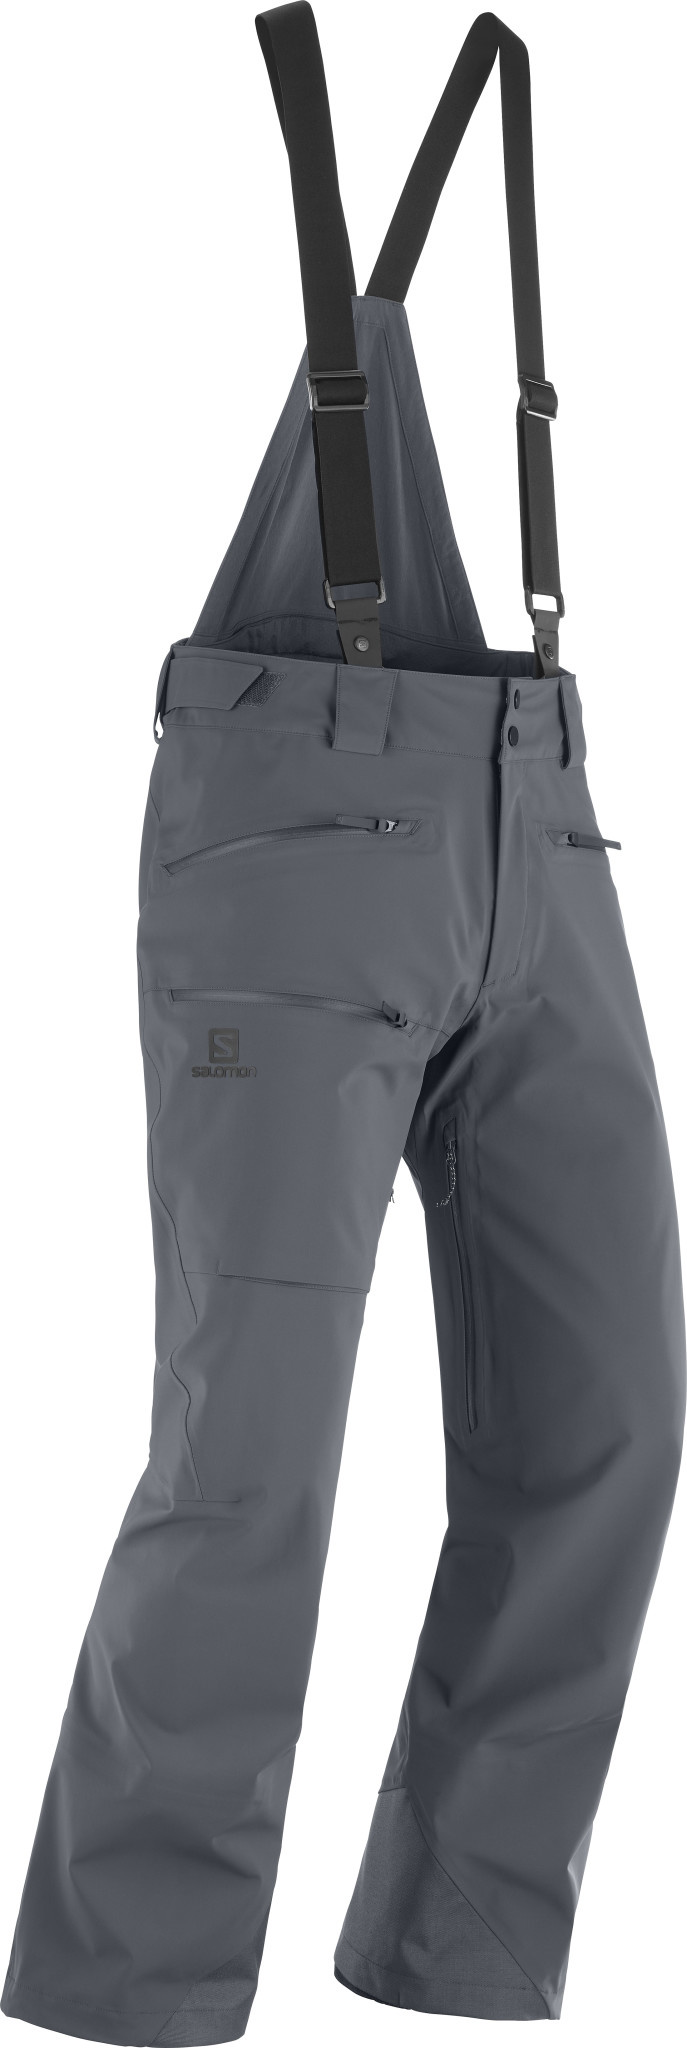 OUTLAW 3L SHELL PANT M-6